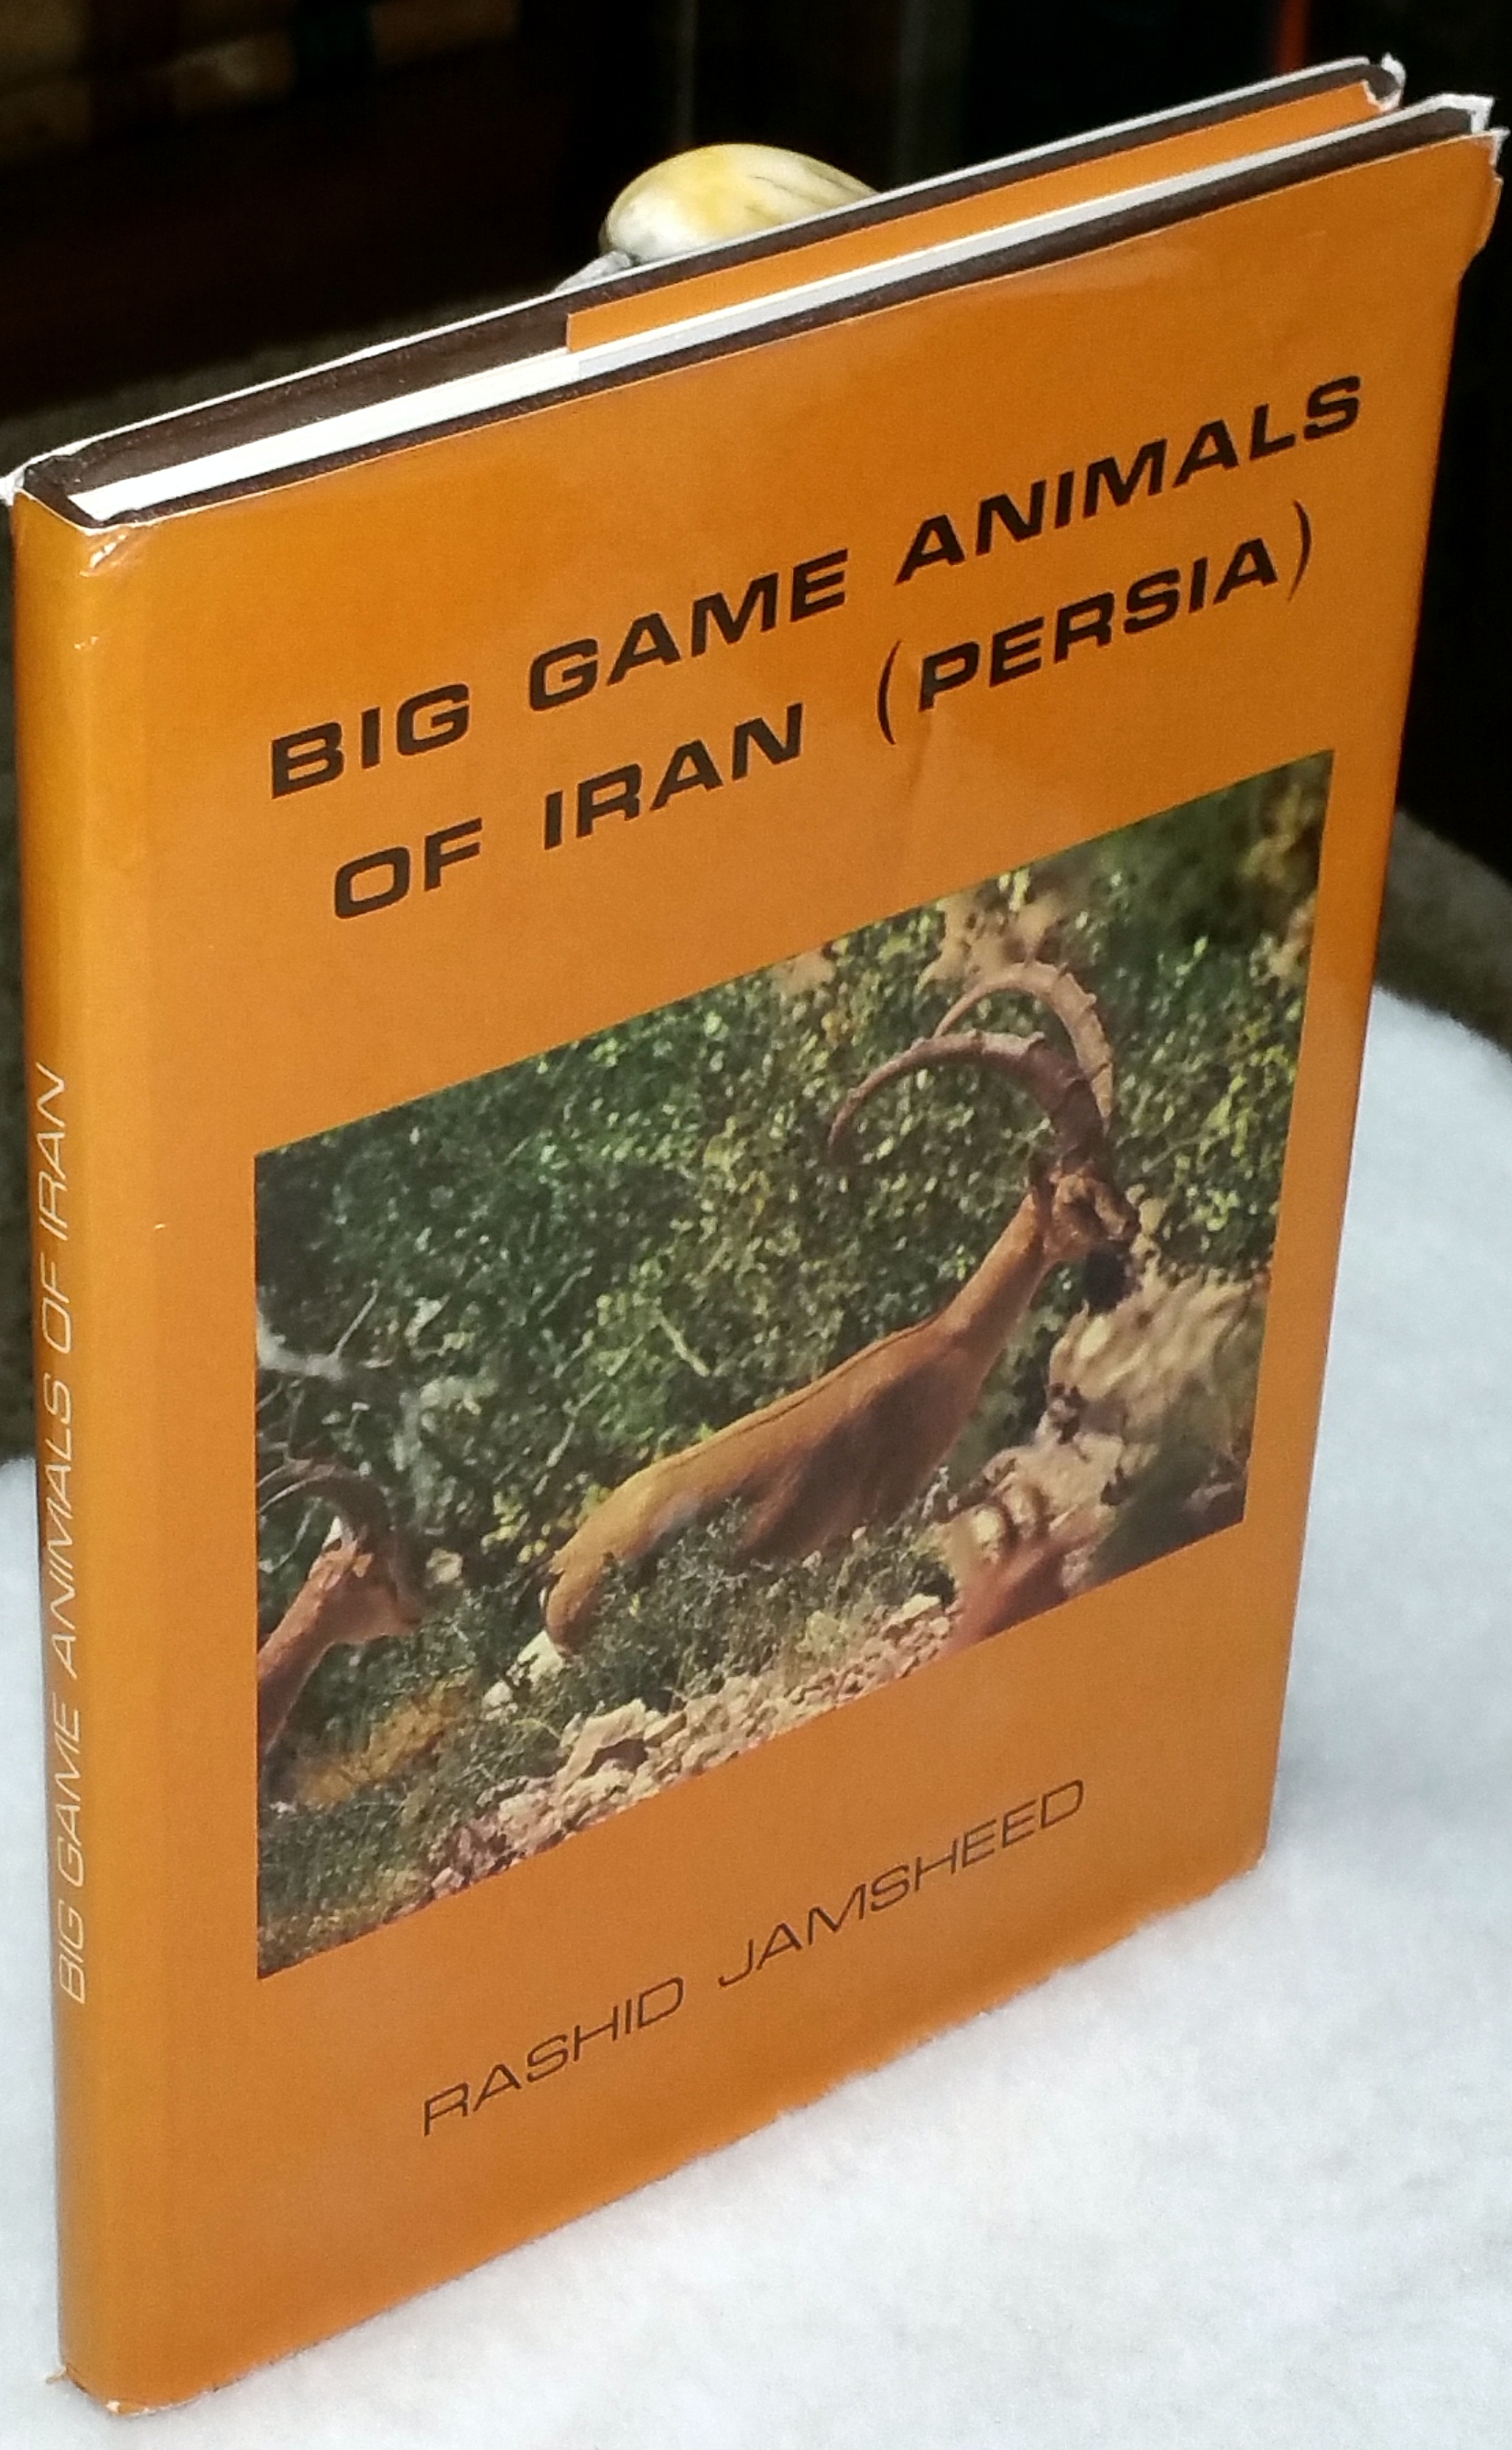 Image for Big Game Animals of Iran (Persia)